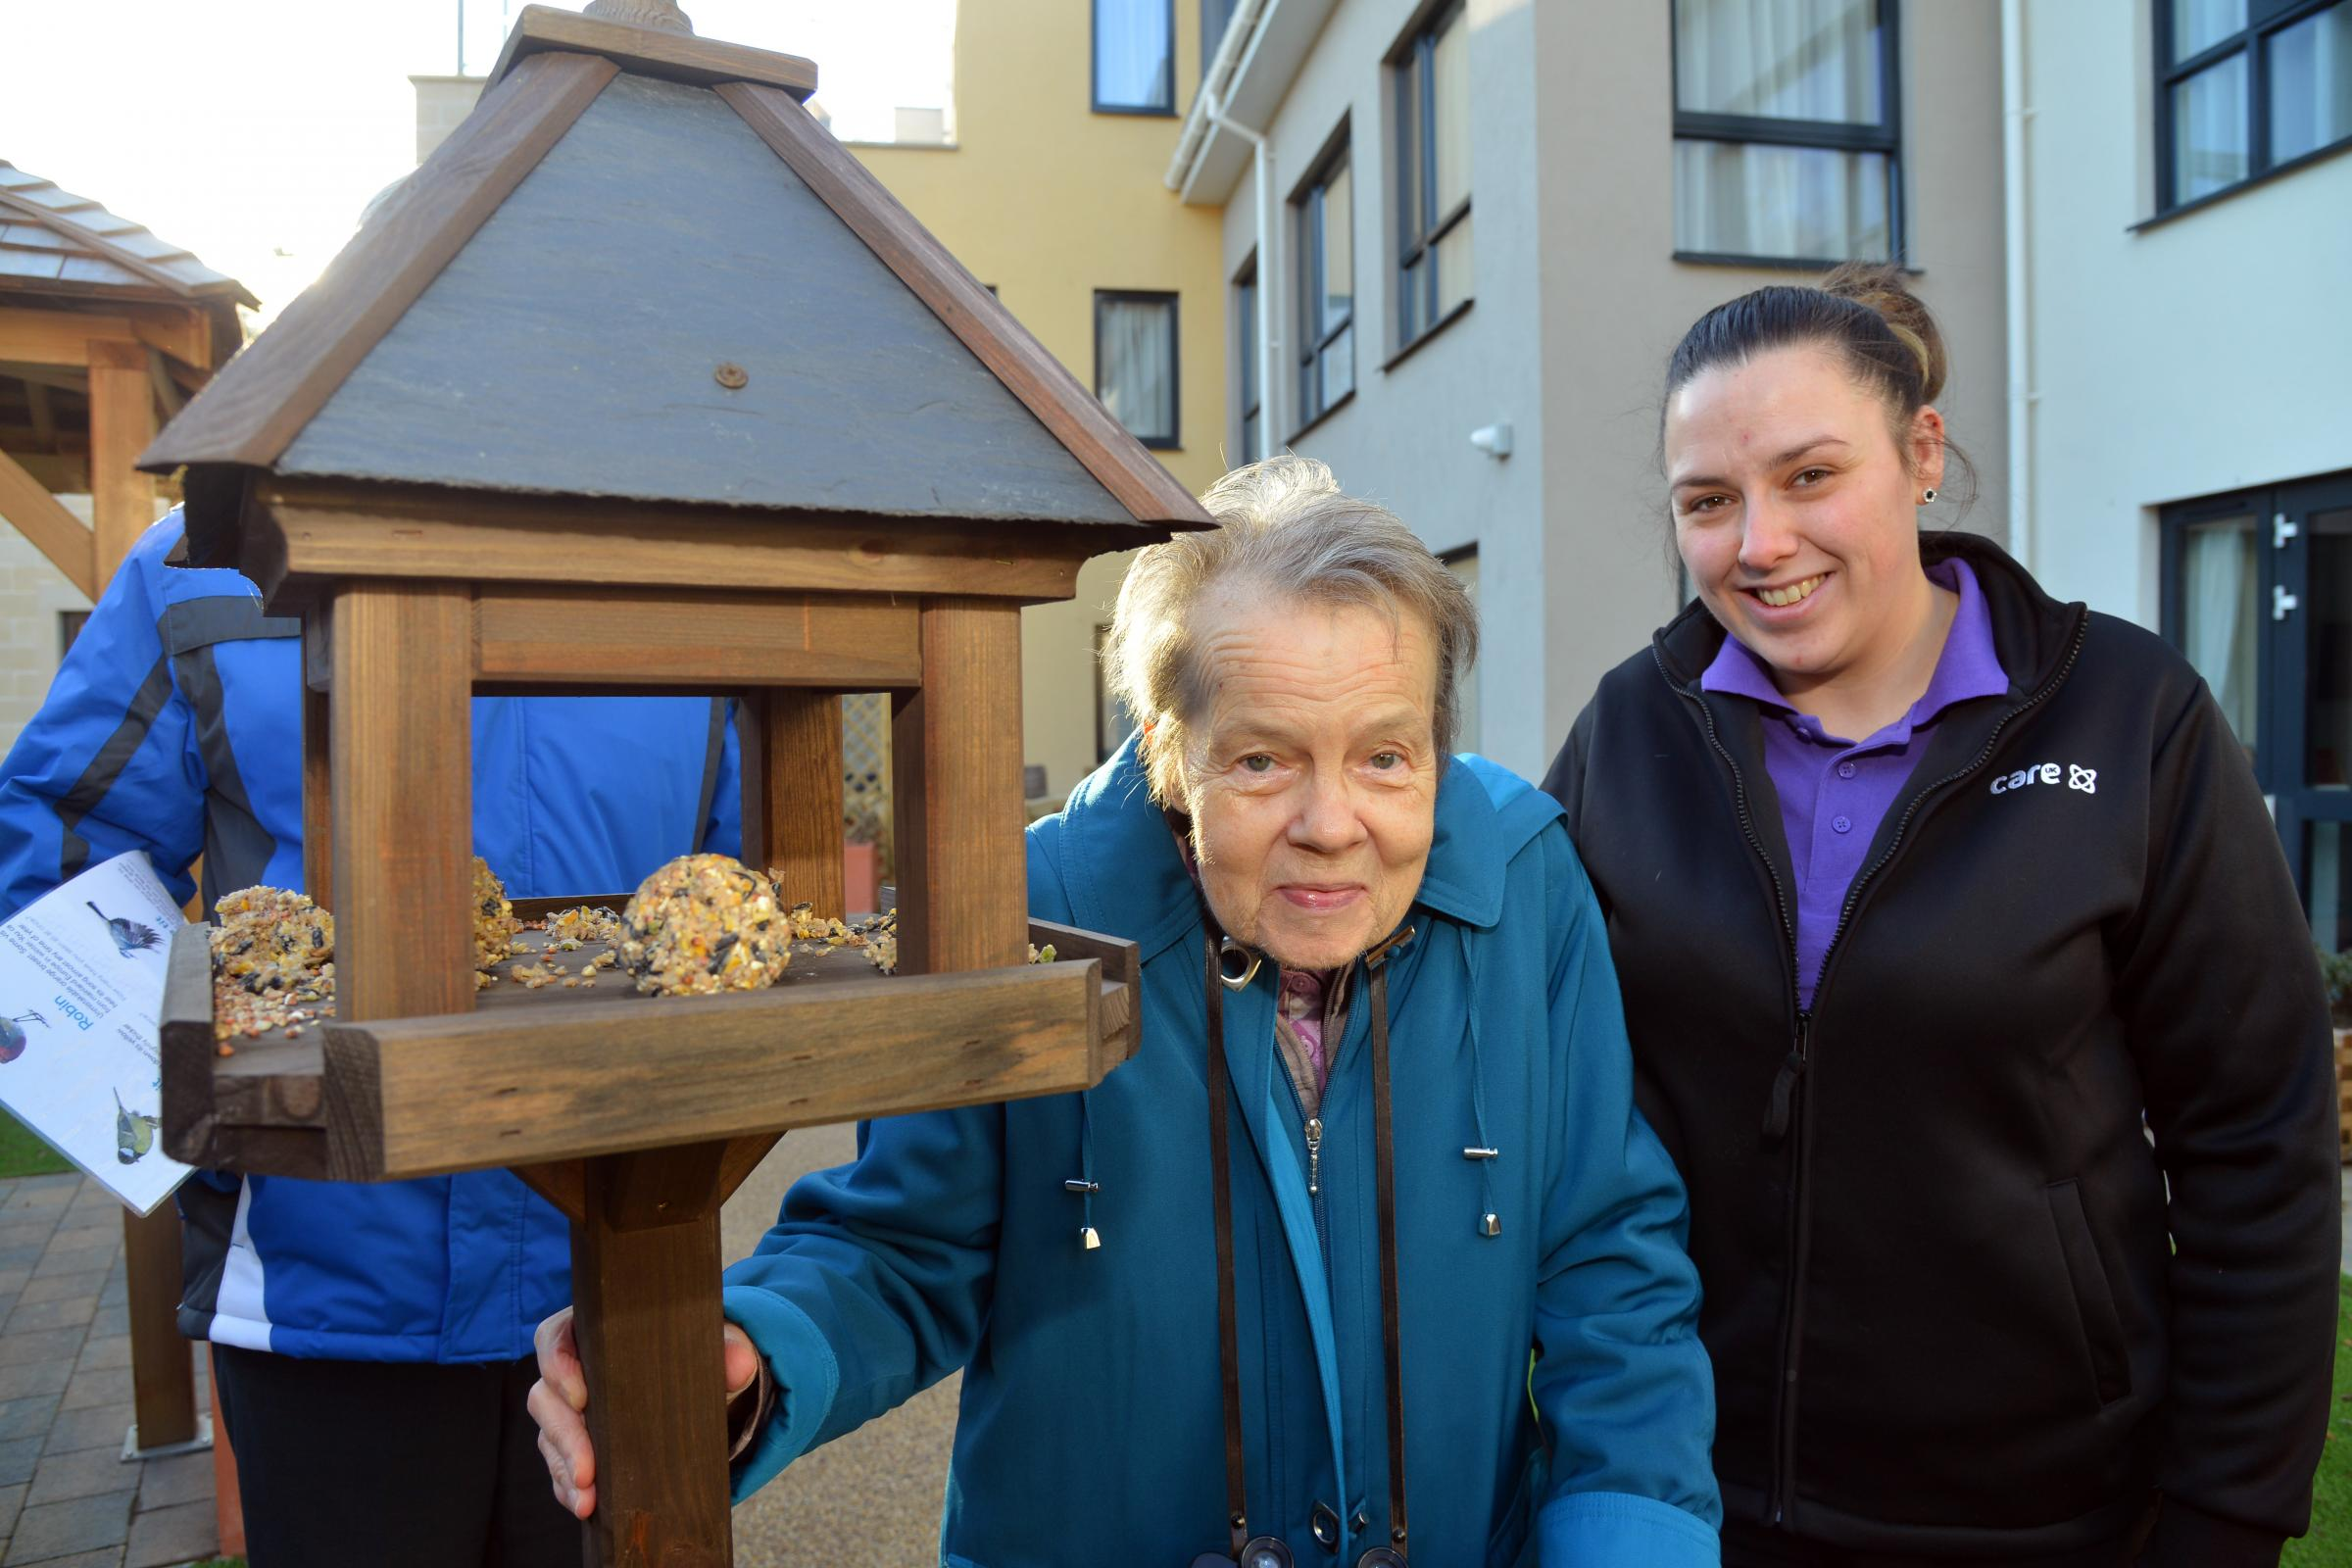 Bird is the word! West Drayton care home residents spread their wings to celebrate the best of British birds